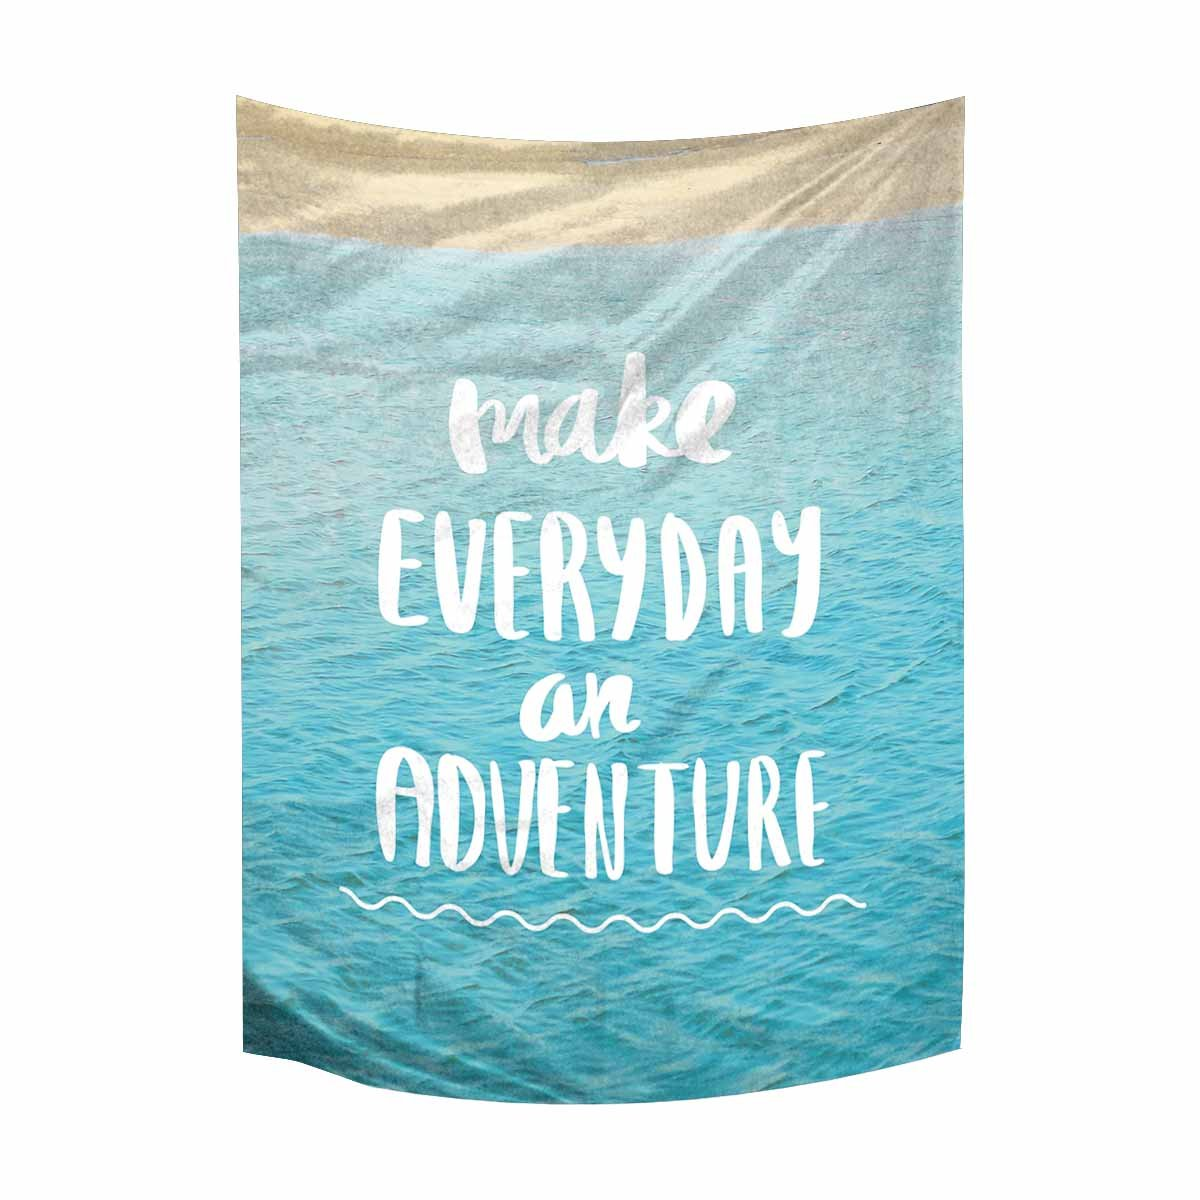 InterestPrint Inspirational Quote On Blue Ocean Sea Make Everyday an Adventure Tapestry Wall Hanging Tapestries Wall Art Home Decor for Bedroom Living Room Dorm, 40W X 60L inch